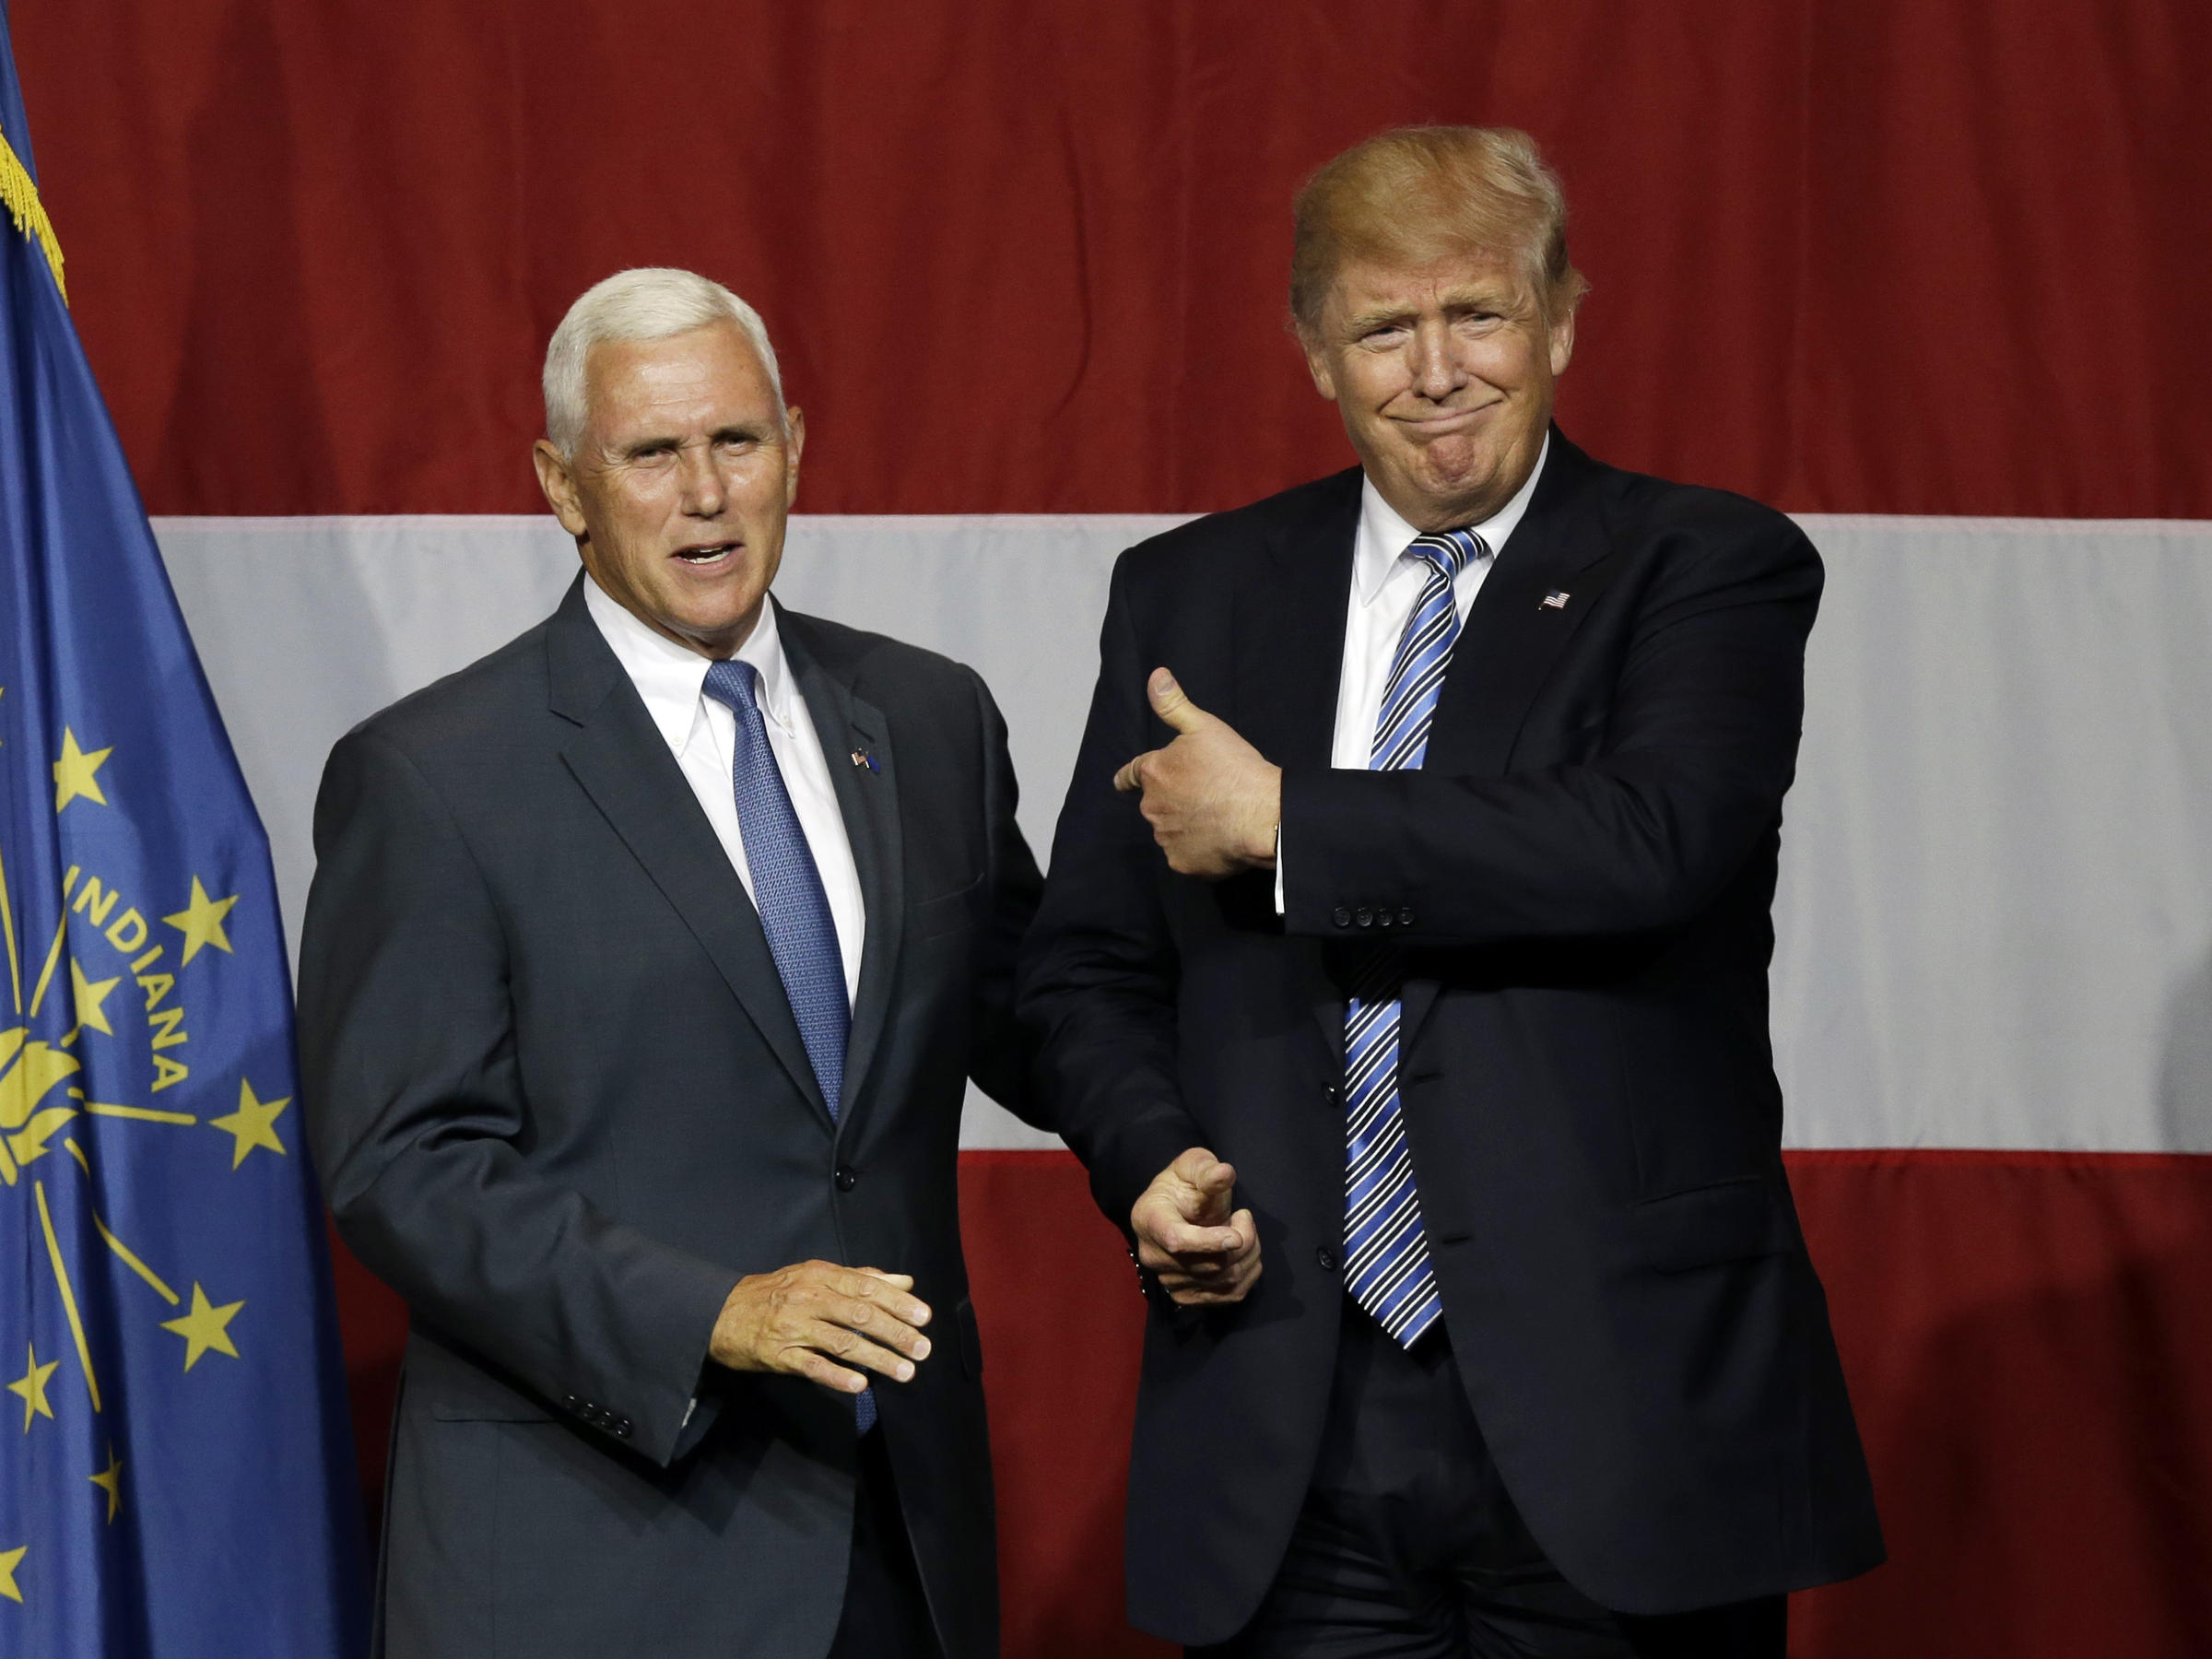 Trump Introduces Pence as VP Pick